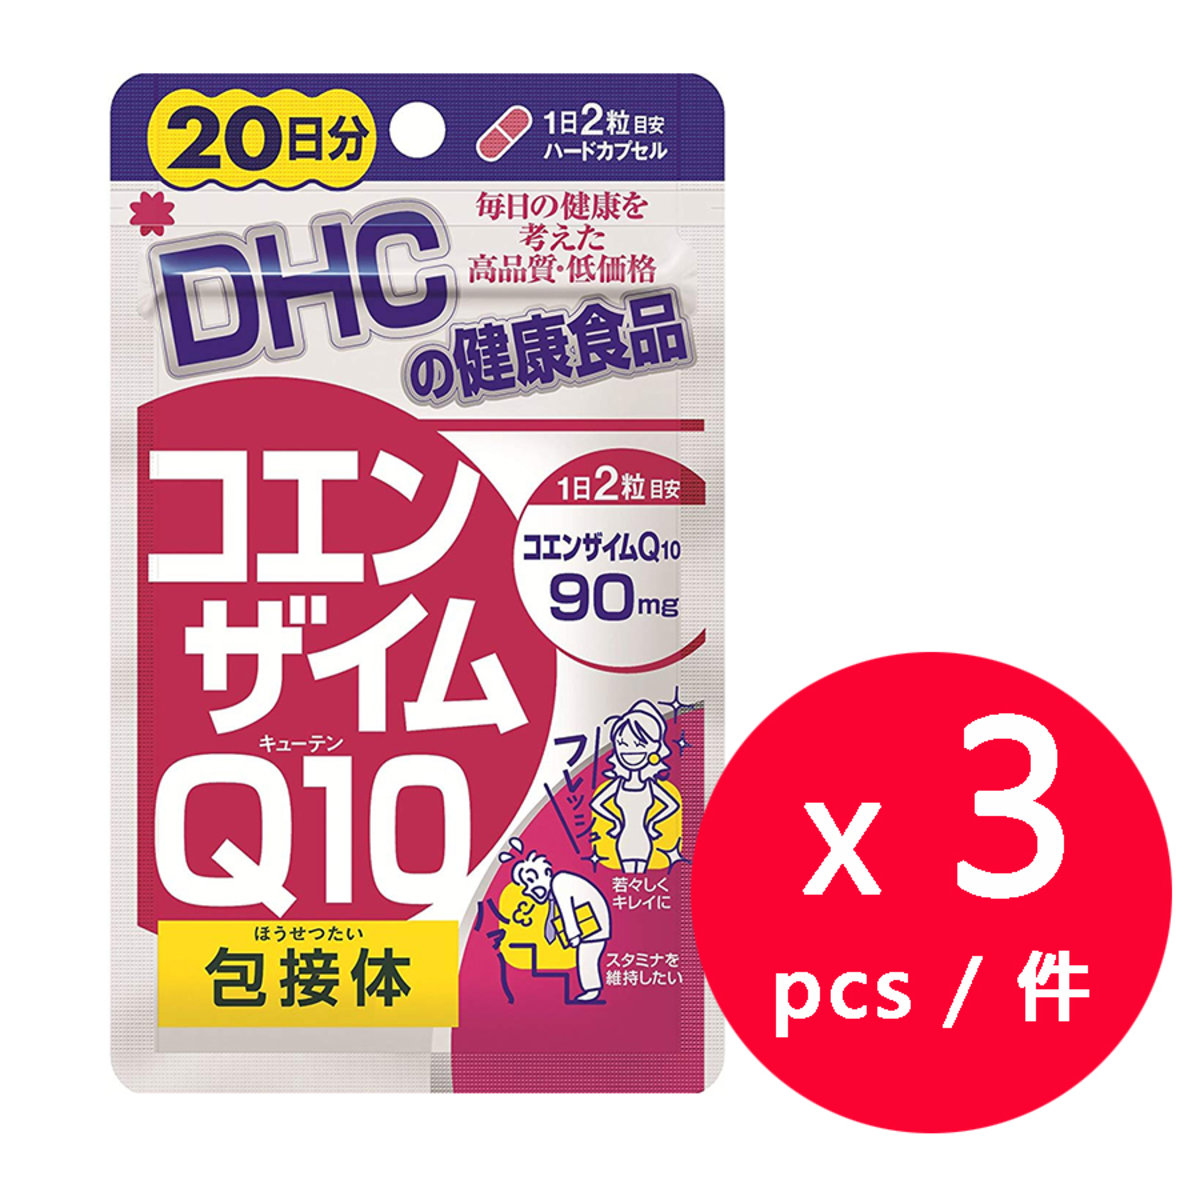 DHC Reduced Coenzyme Q10 Supplement (20 Day) x 3 packs (Parallel Import)